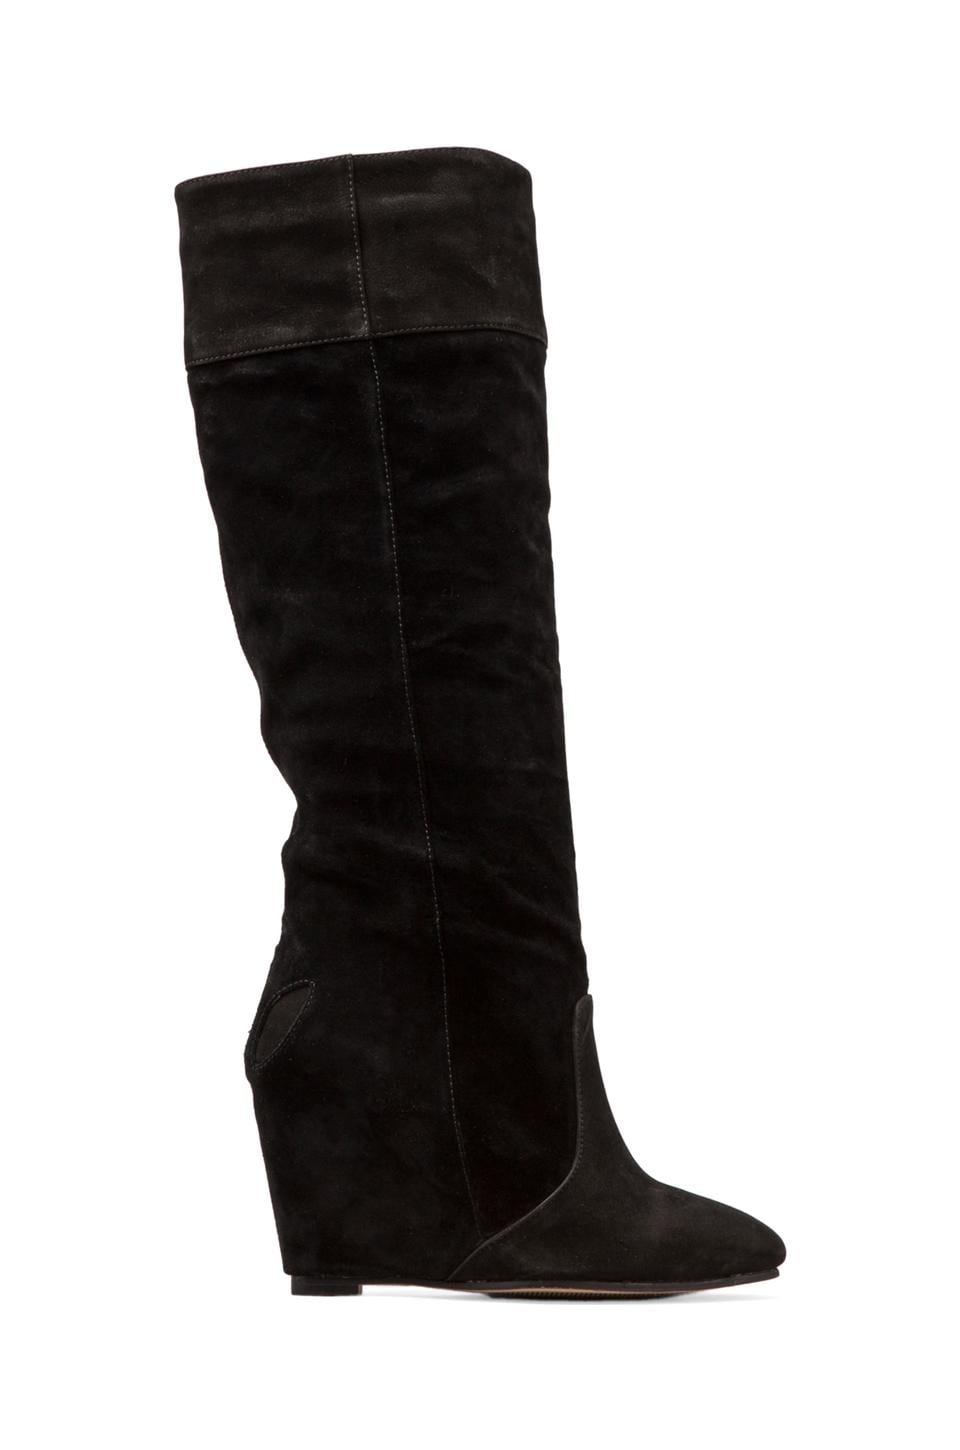 MADISON HARDING Debreul Knee-High Boot in Black